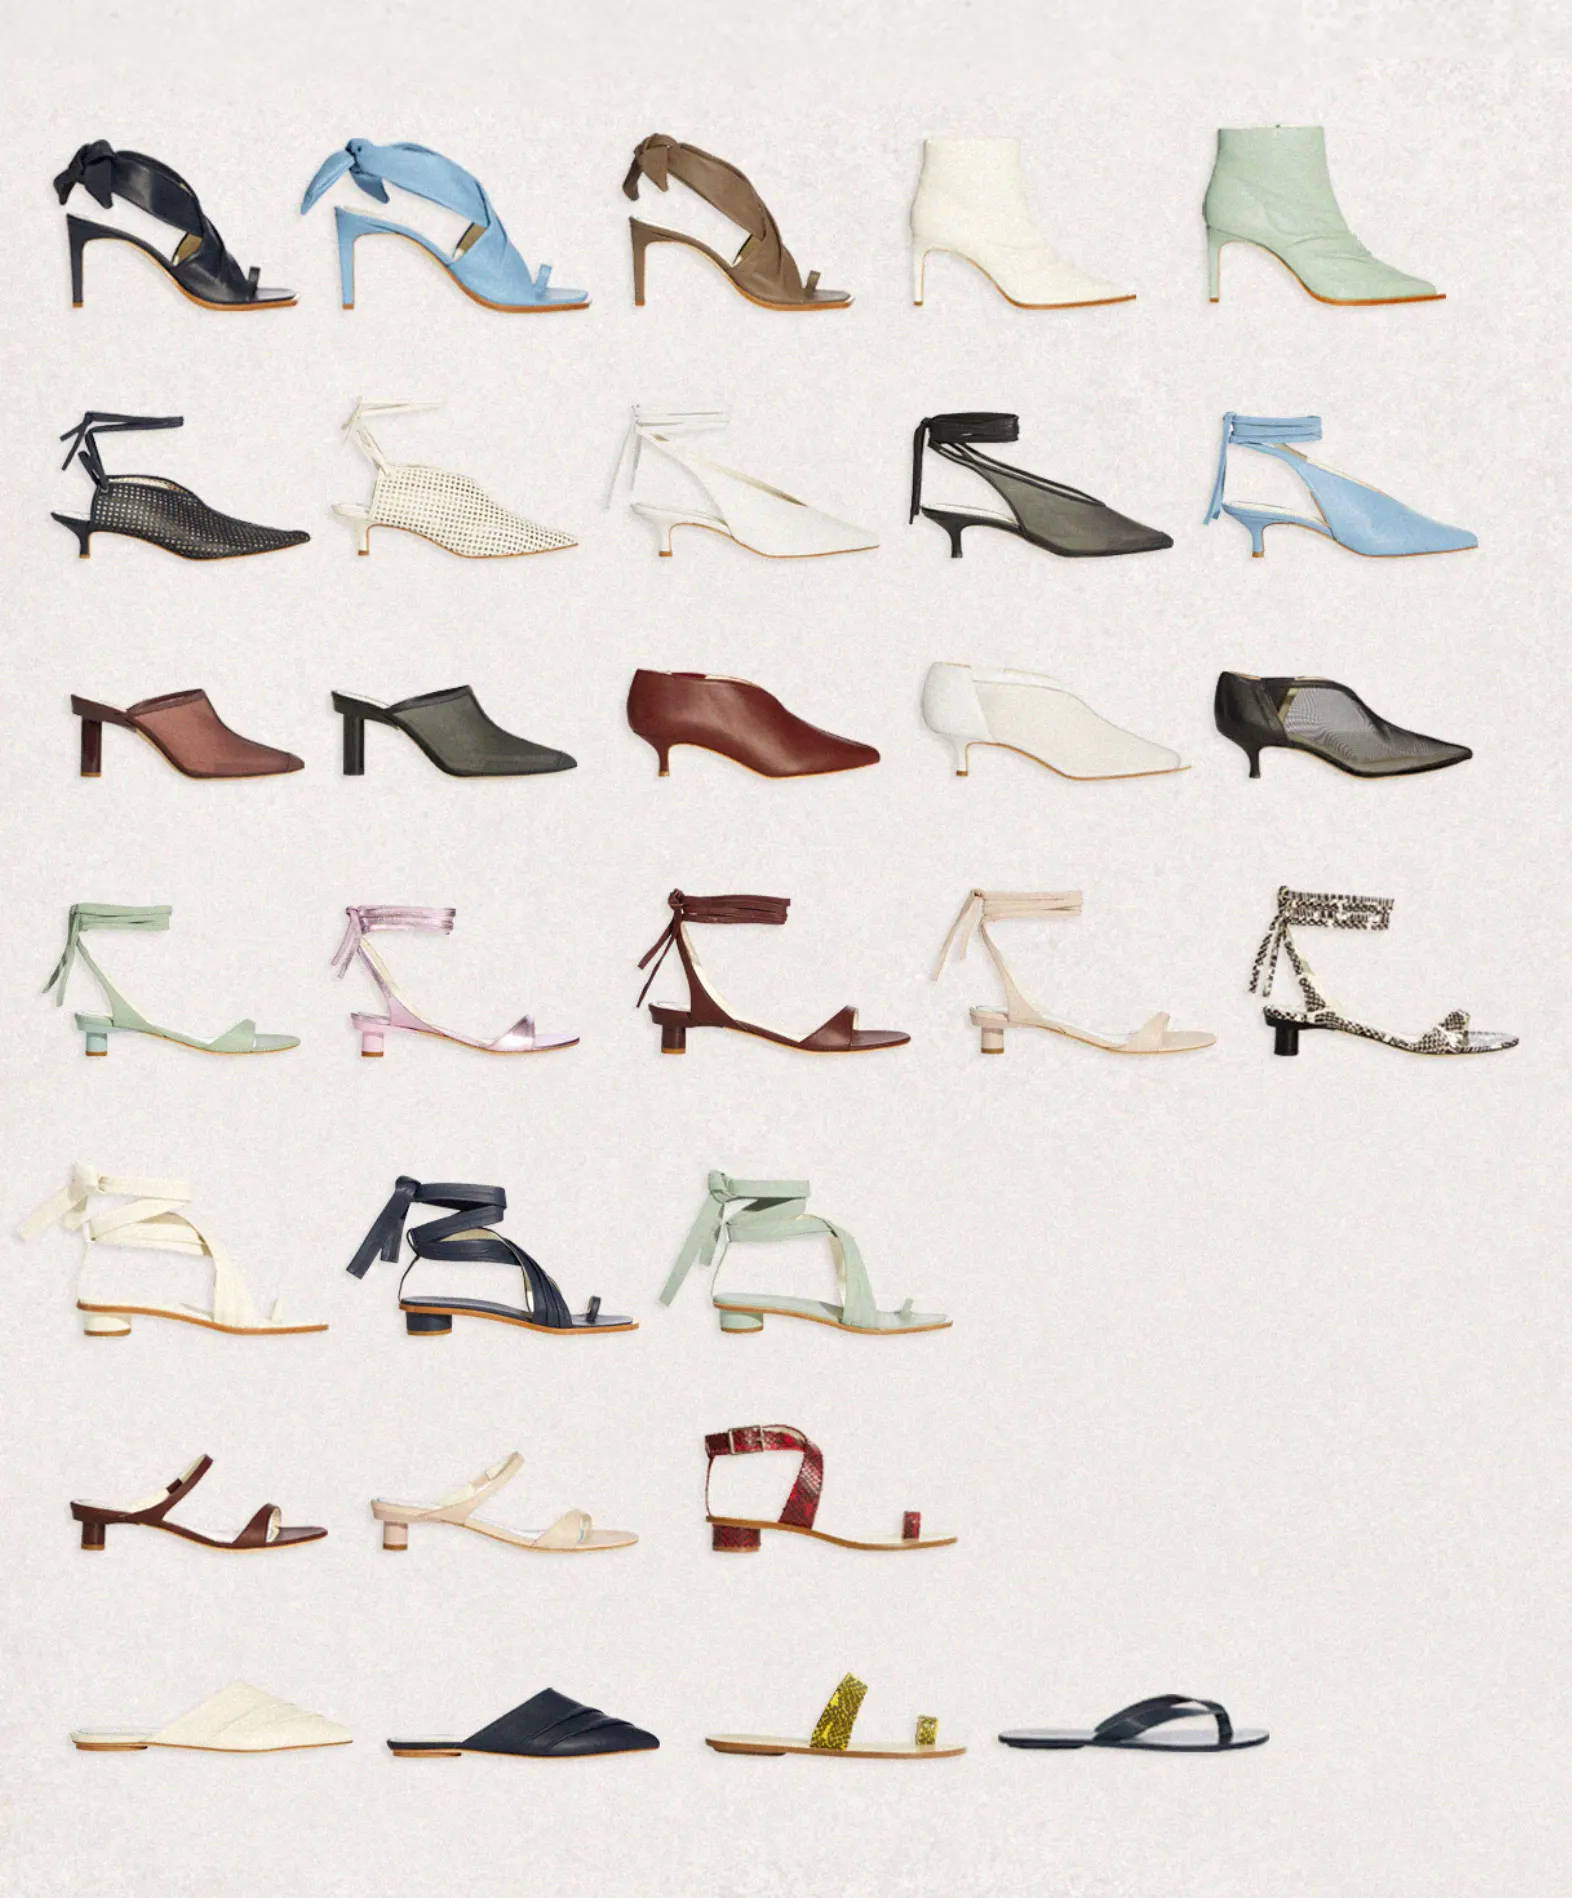 5 rows of Spring 2019 shoes. Featuring sandals, mules and boots.